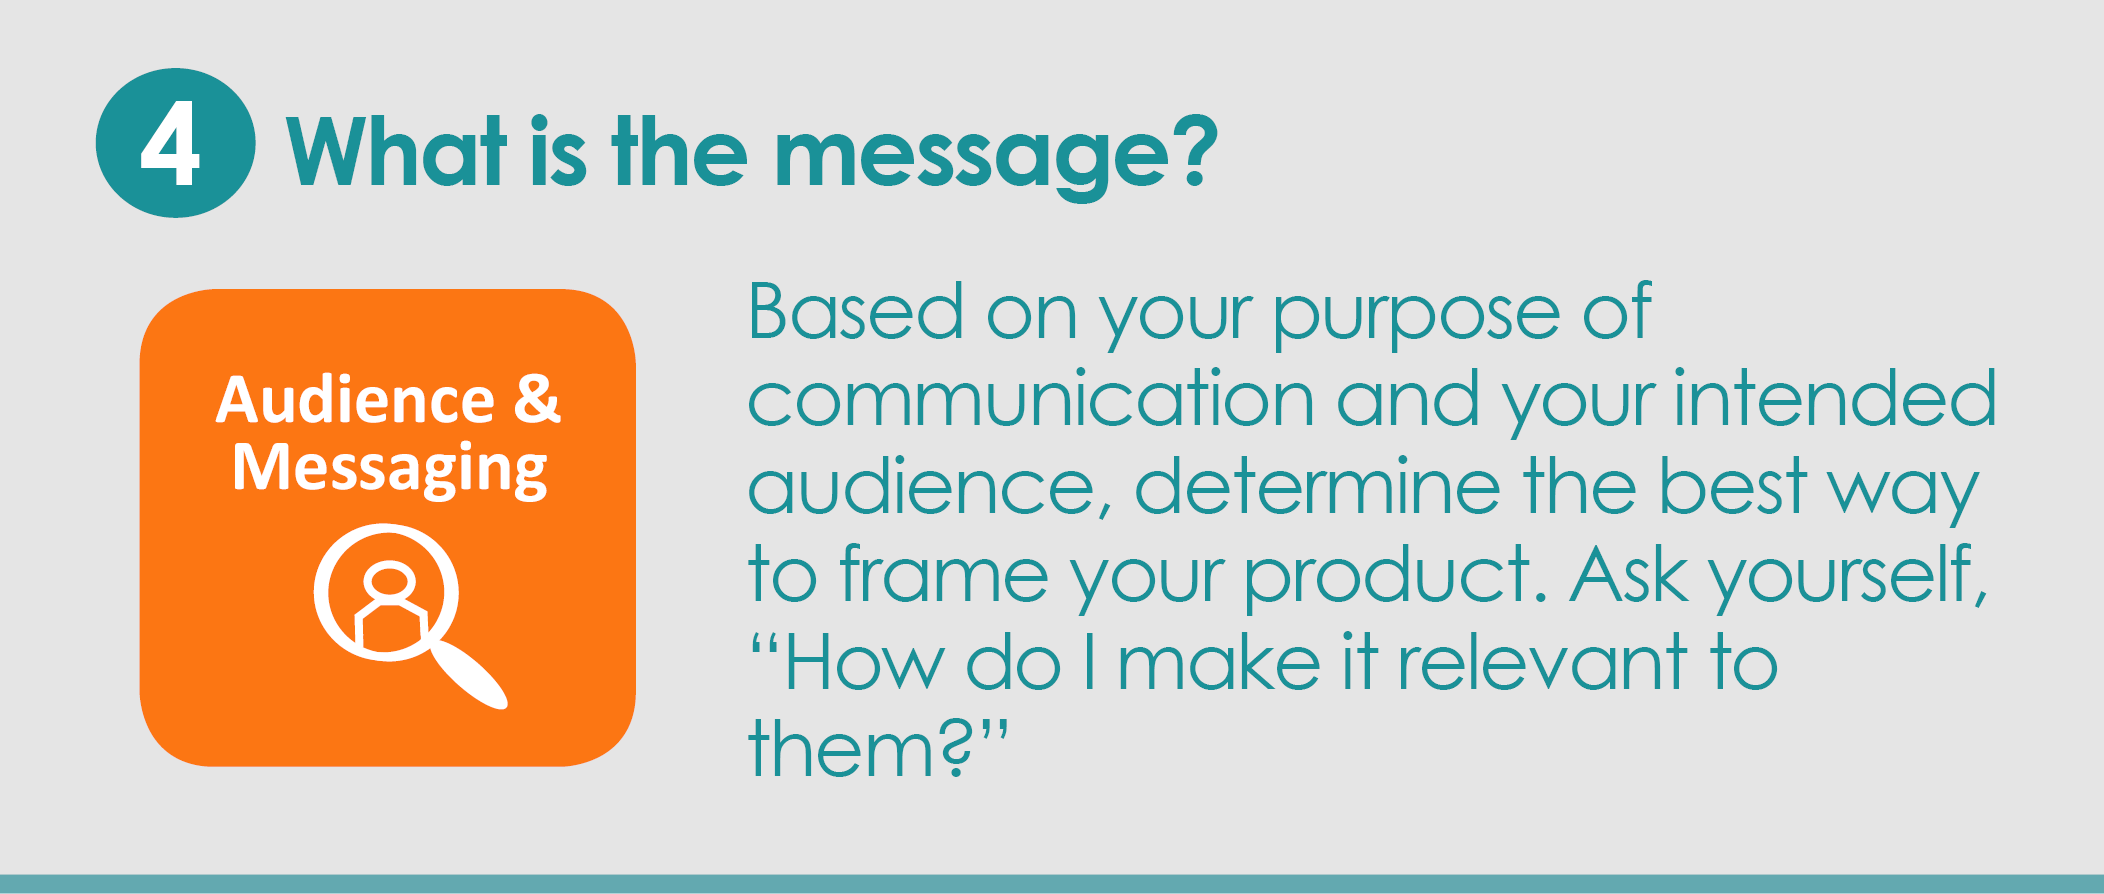 "Step 4: What is the message? Based on your purpose of communication and your intended audience, determine the best way to frame your product. Ask yourself, ""How do I make it relevant to them?"""